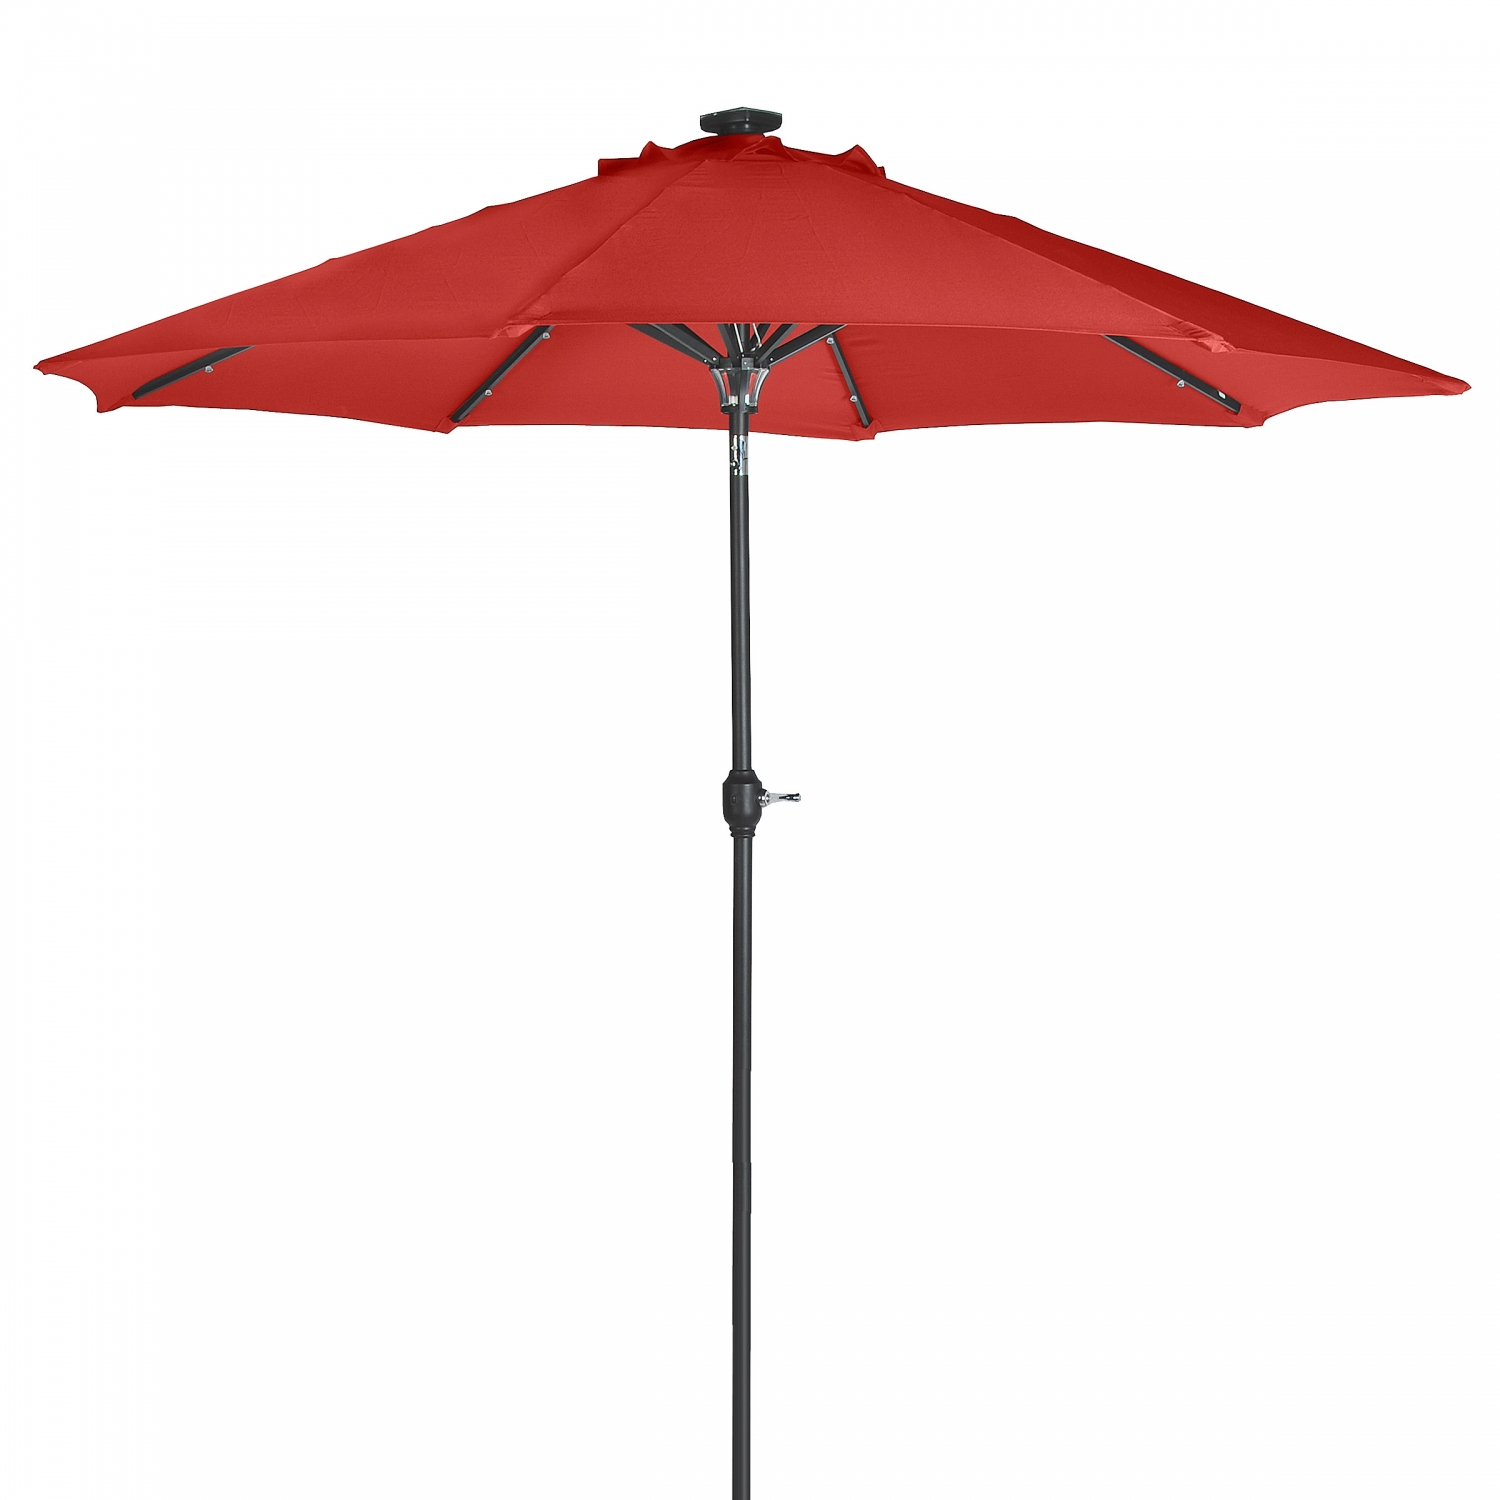 Details About Sunergy 50140851 9 Ft Solar Ed Metal Patio Umbrella 24 Led Lights Scarlet